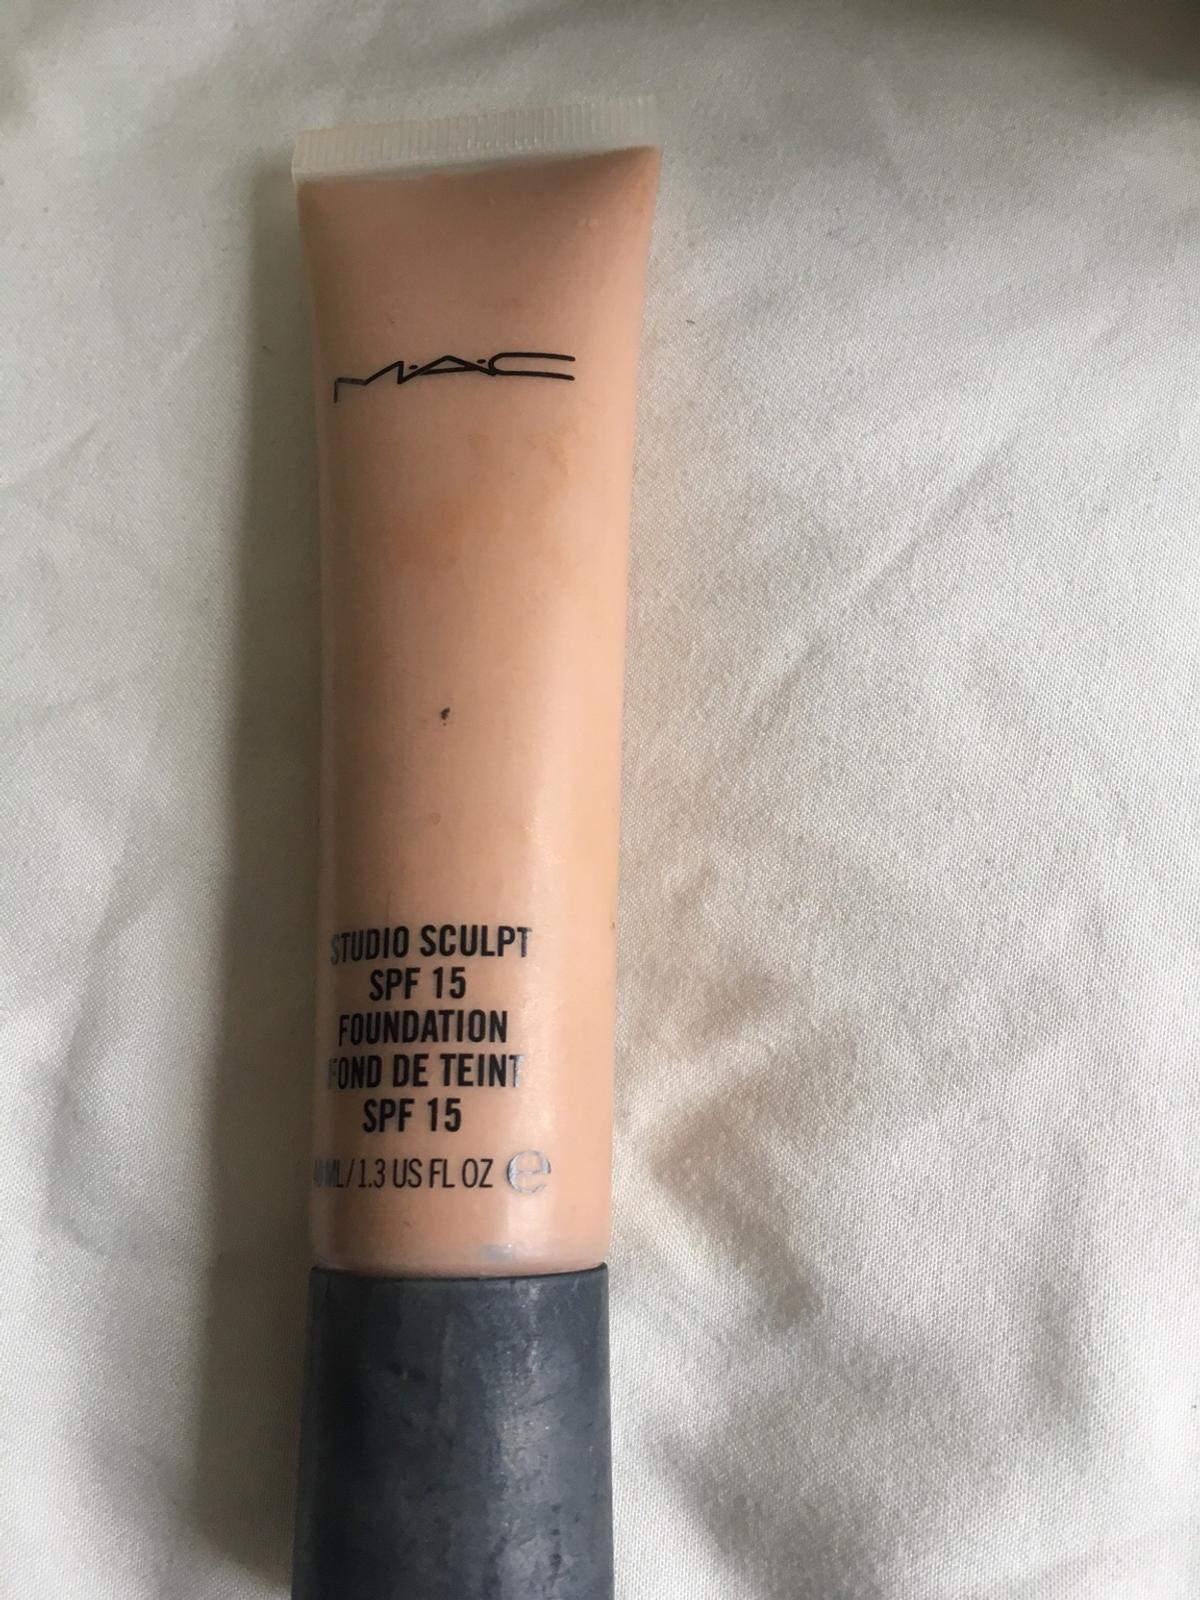 Mac Studio Sculpt Foundation In Shade Nw25 In Bb2 Blackburn For 12 00 For Sale Shpock